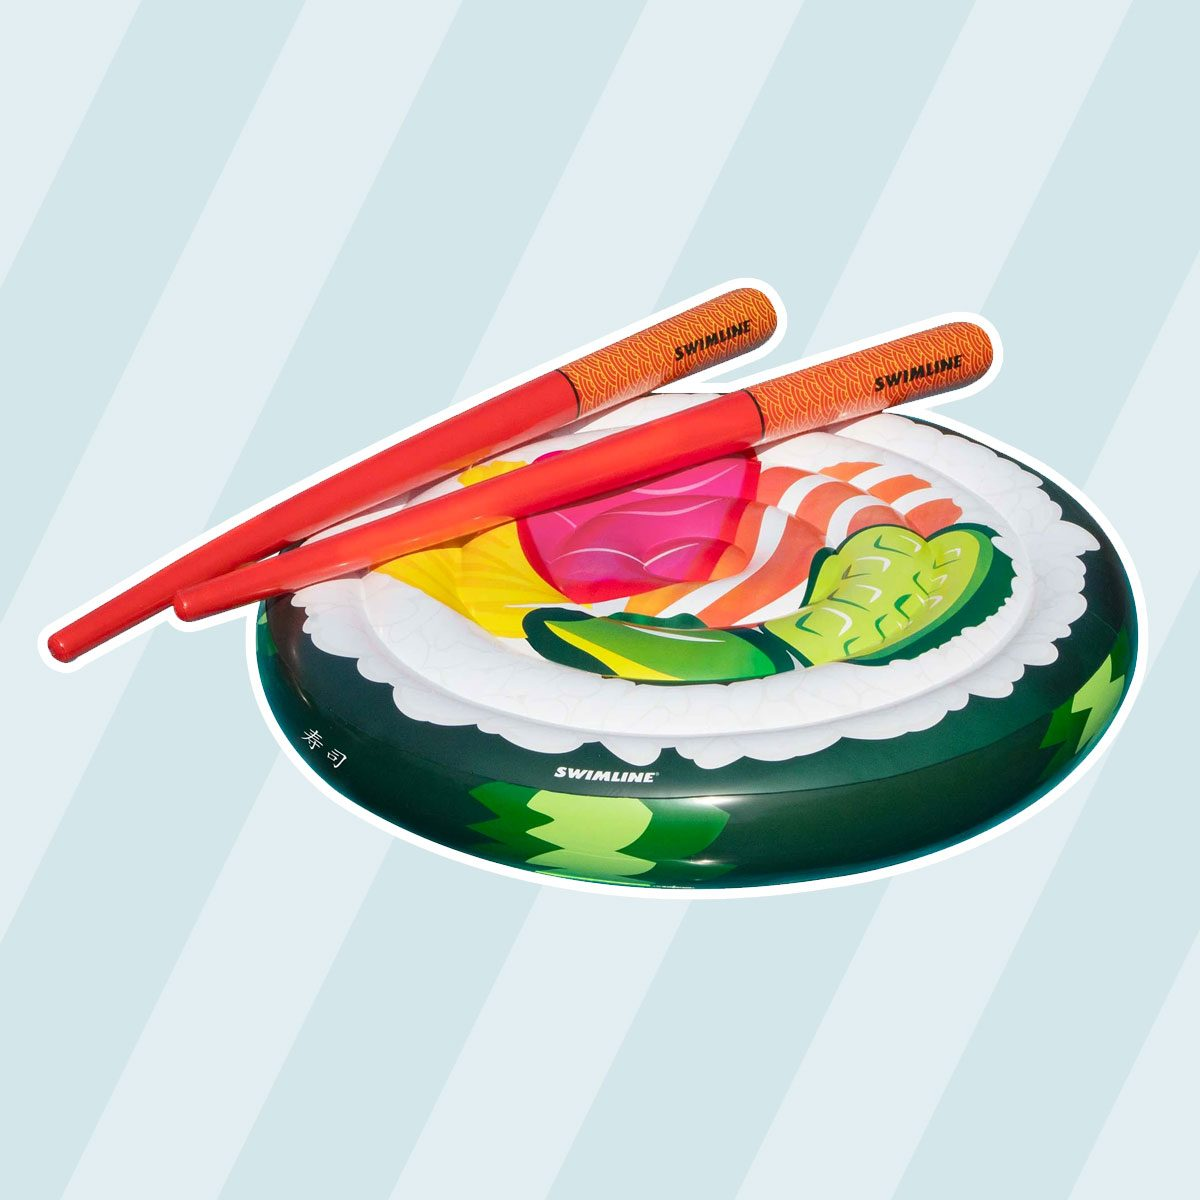 Sushi Roll Island Pool Float